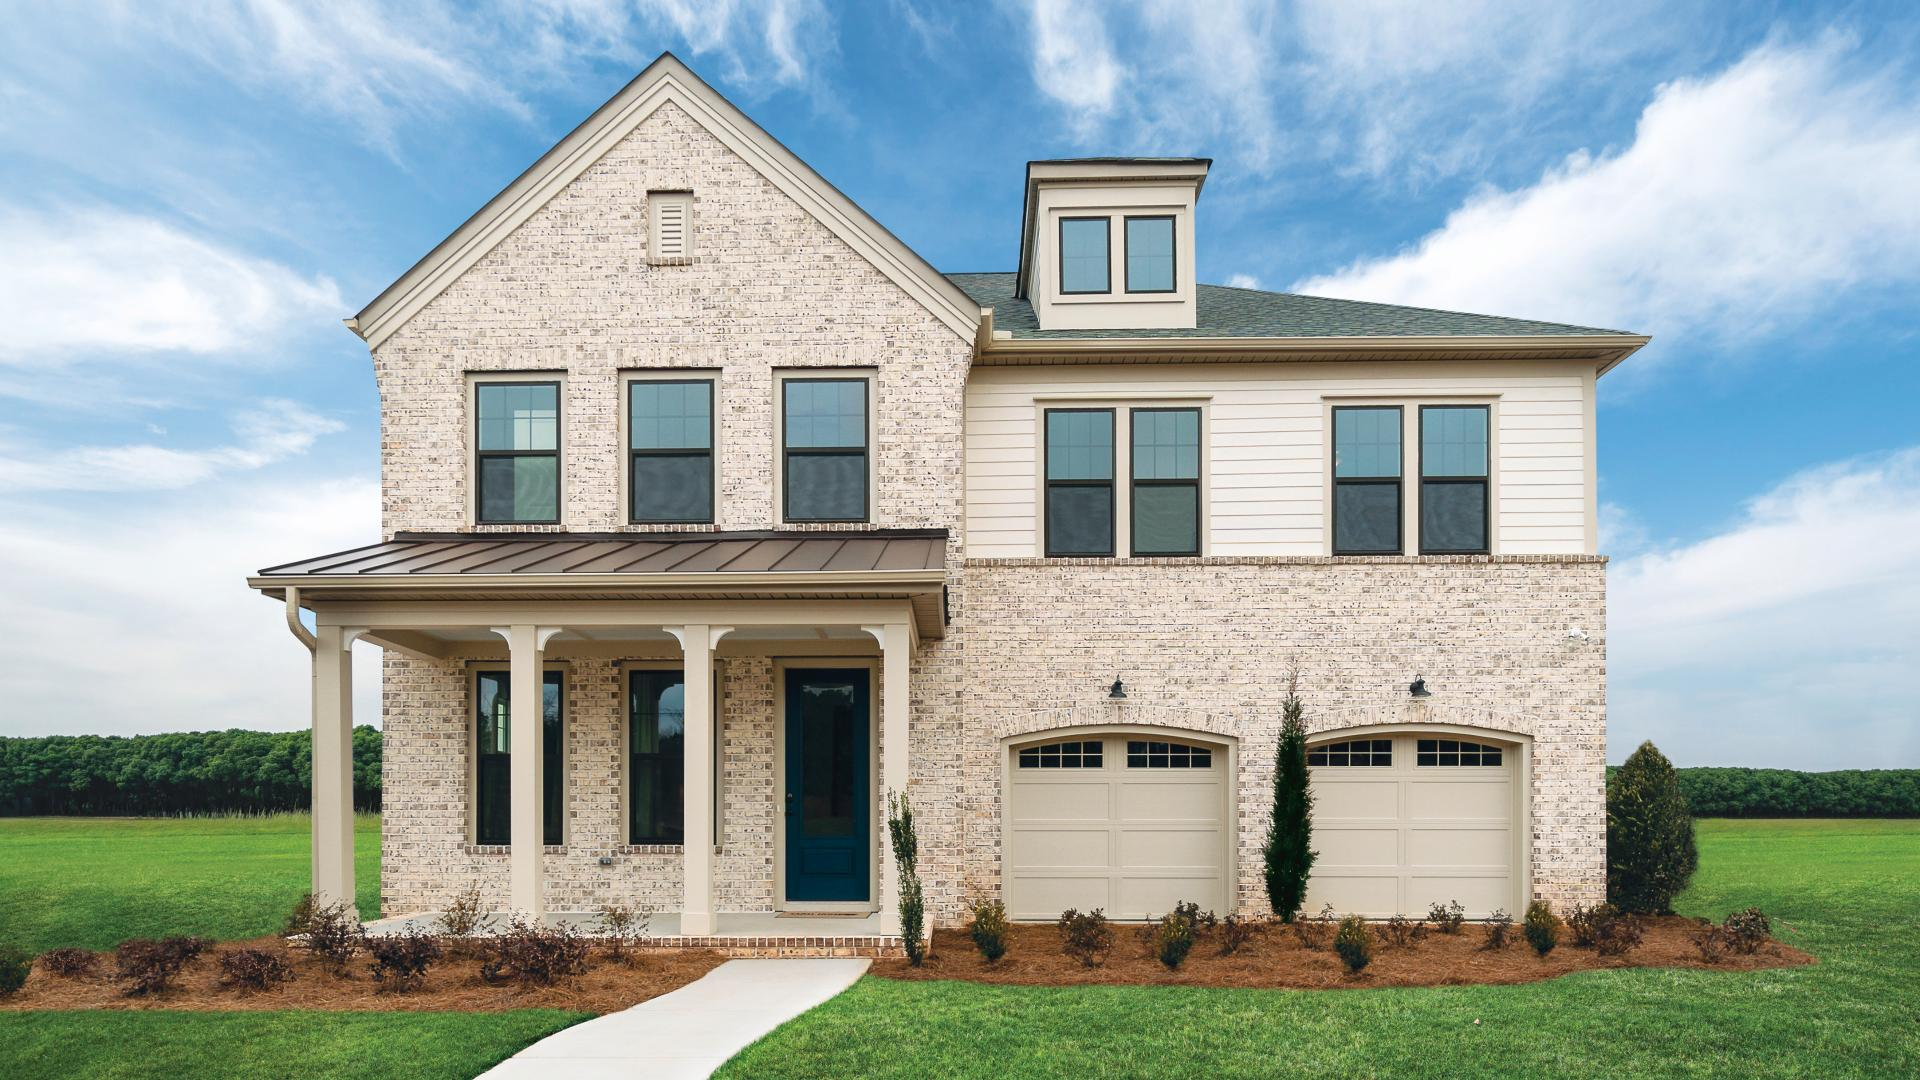 Beautiful architecture style with covered front porches